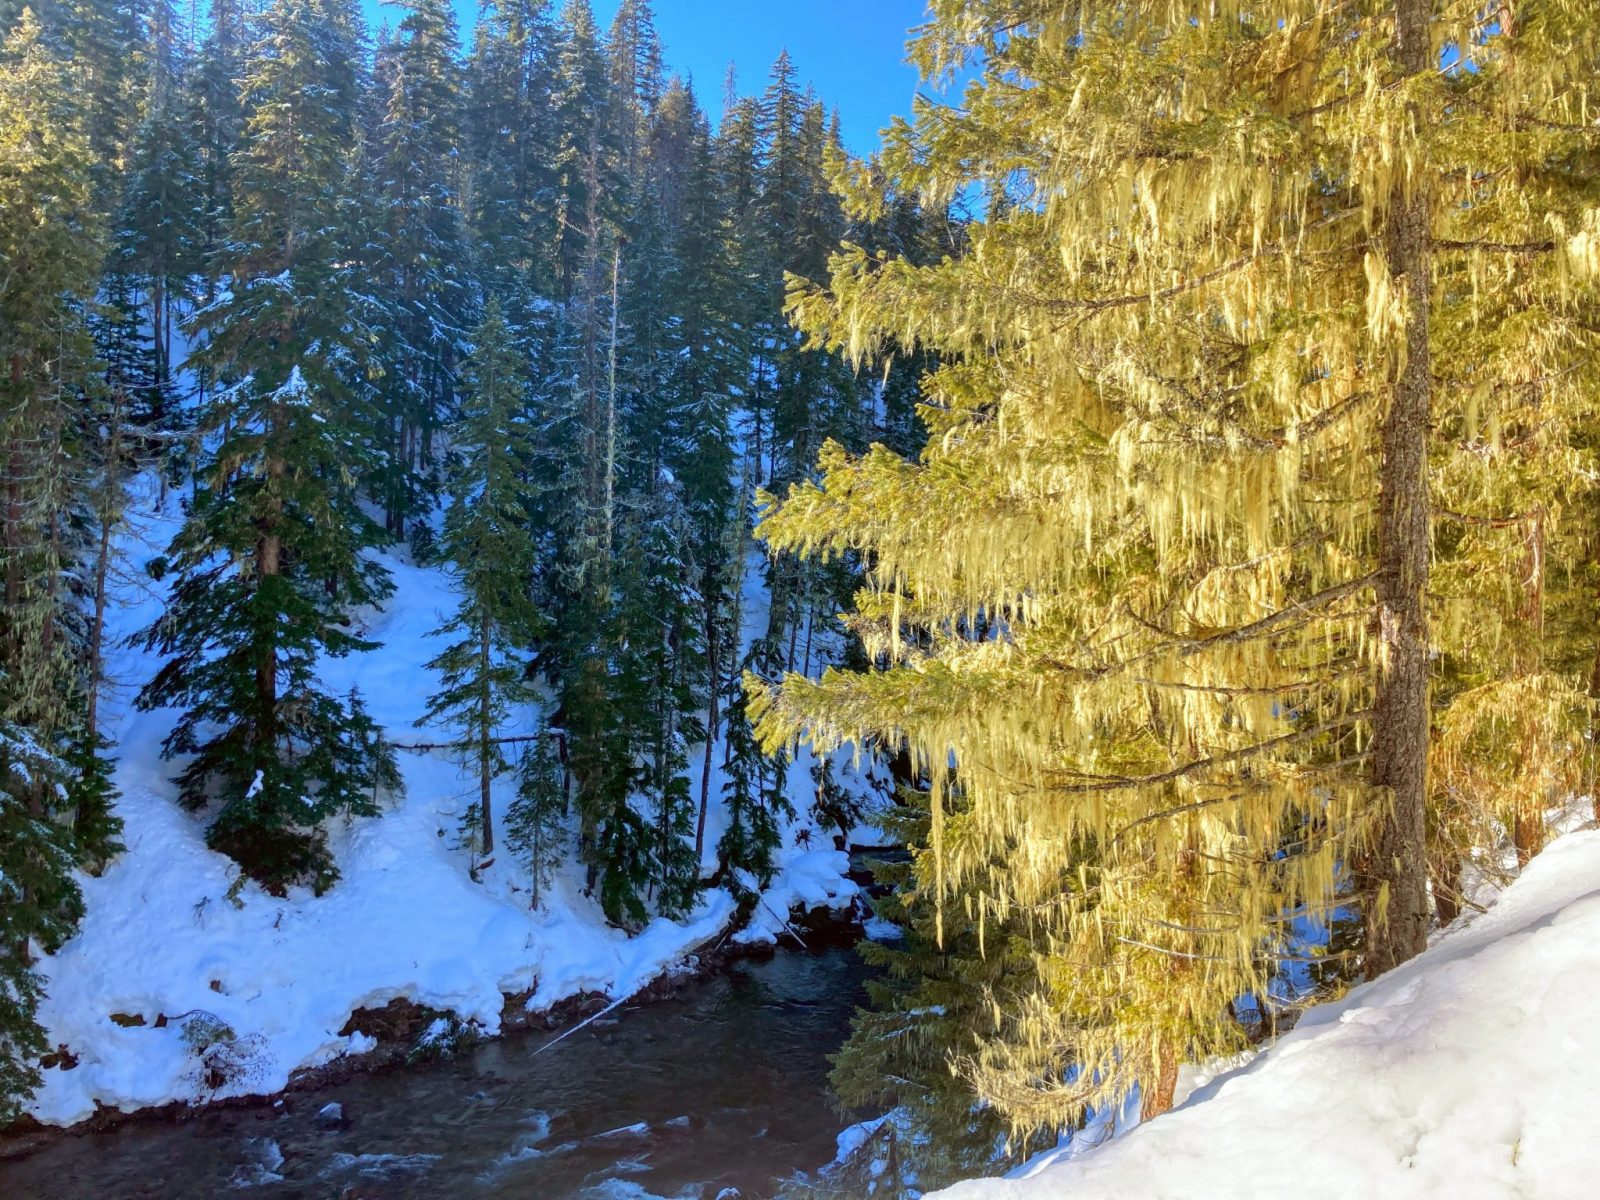 A river below forested hillsides in the winter on a sunny day in the salmon la sac sno park